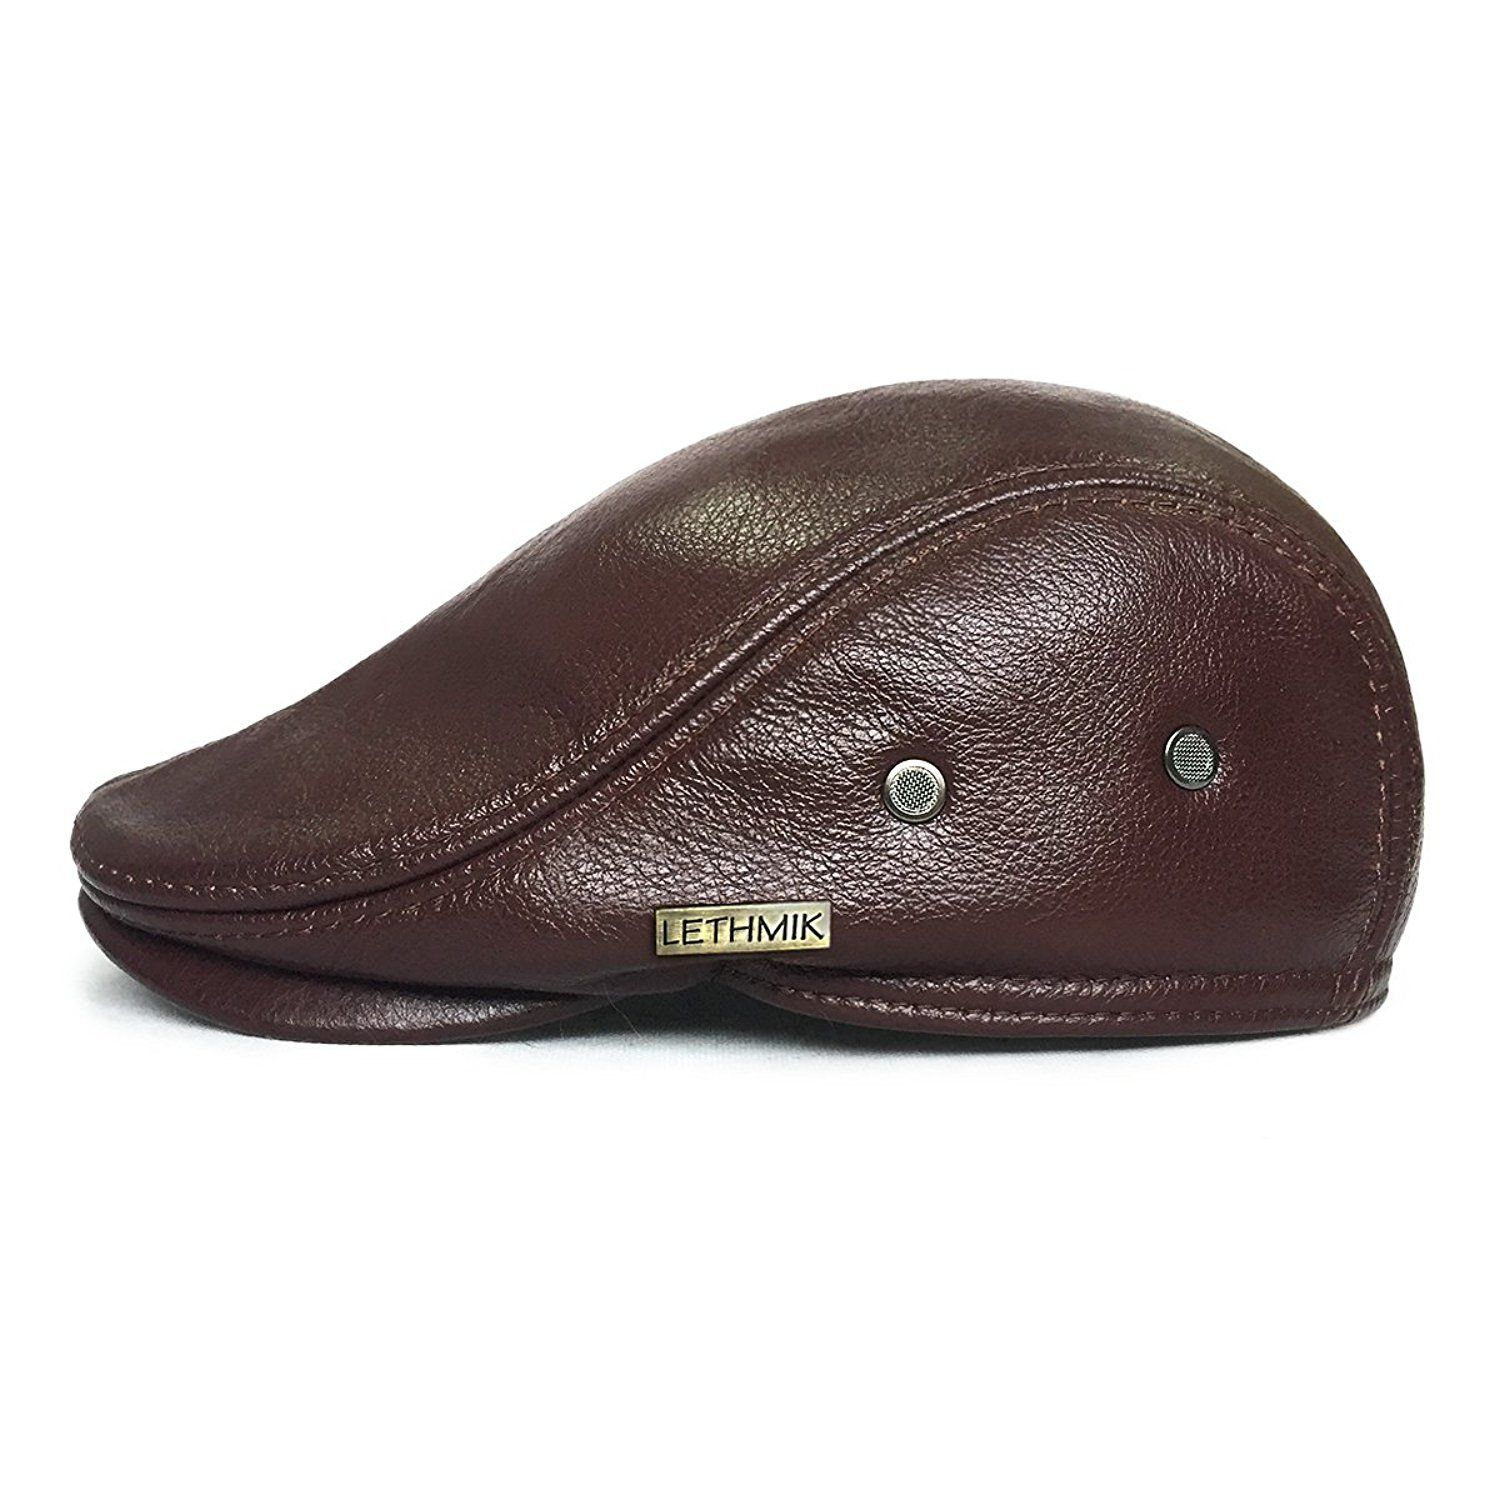 dba9aa8125cfb2 Amazon.com: LETHMIK Flat Cap Cabby Hat Genuine Leather Vintage newsboy Cap  IVY Driving Cap XL-Brown: Sports & Outdoors